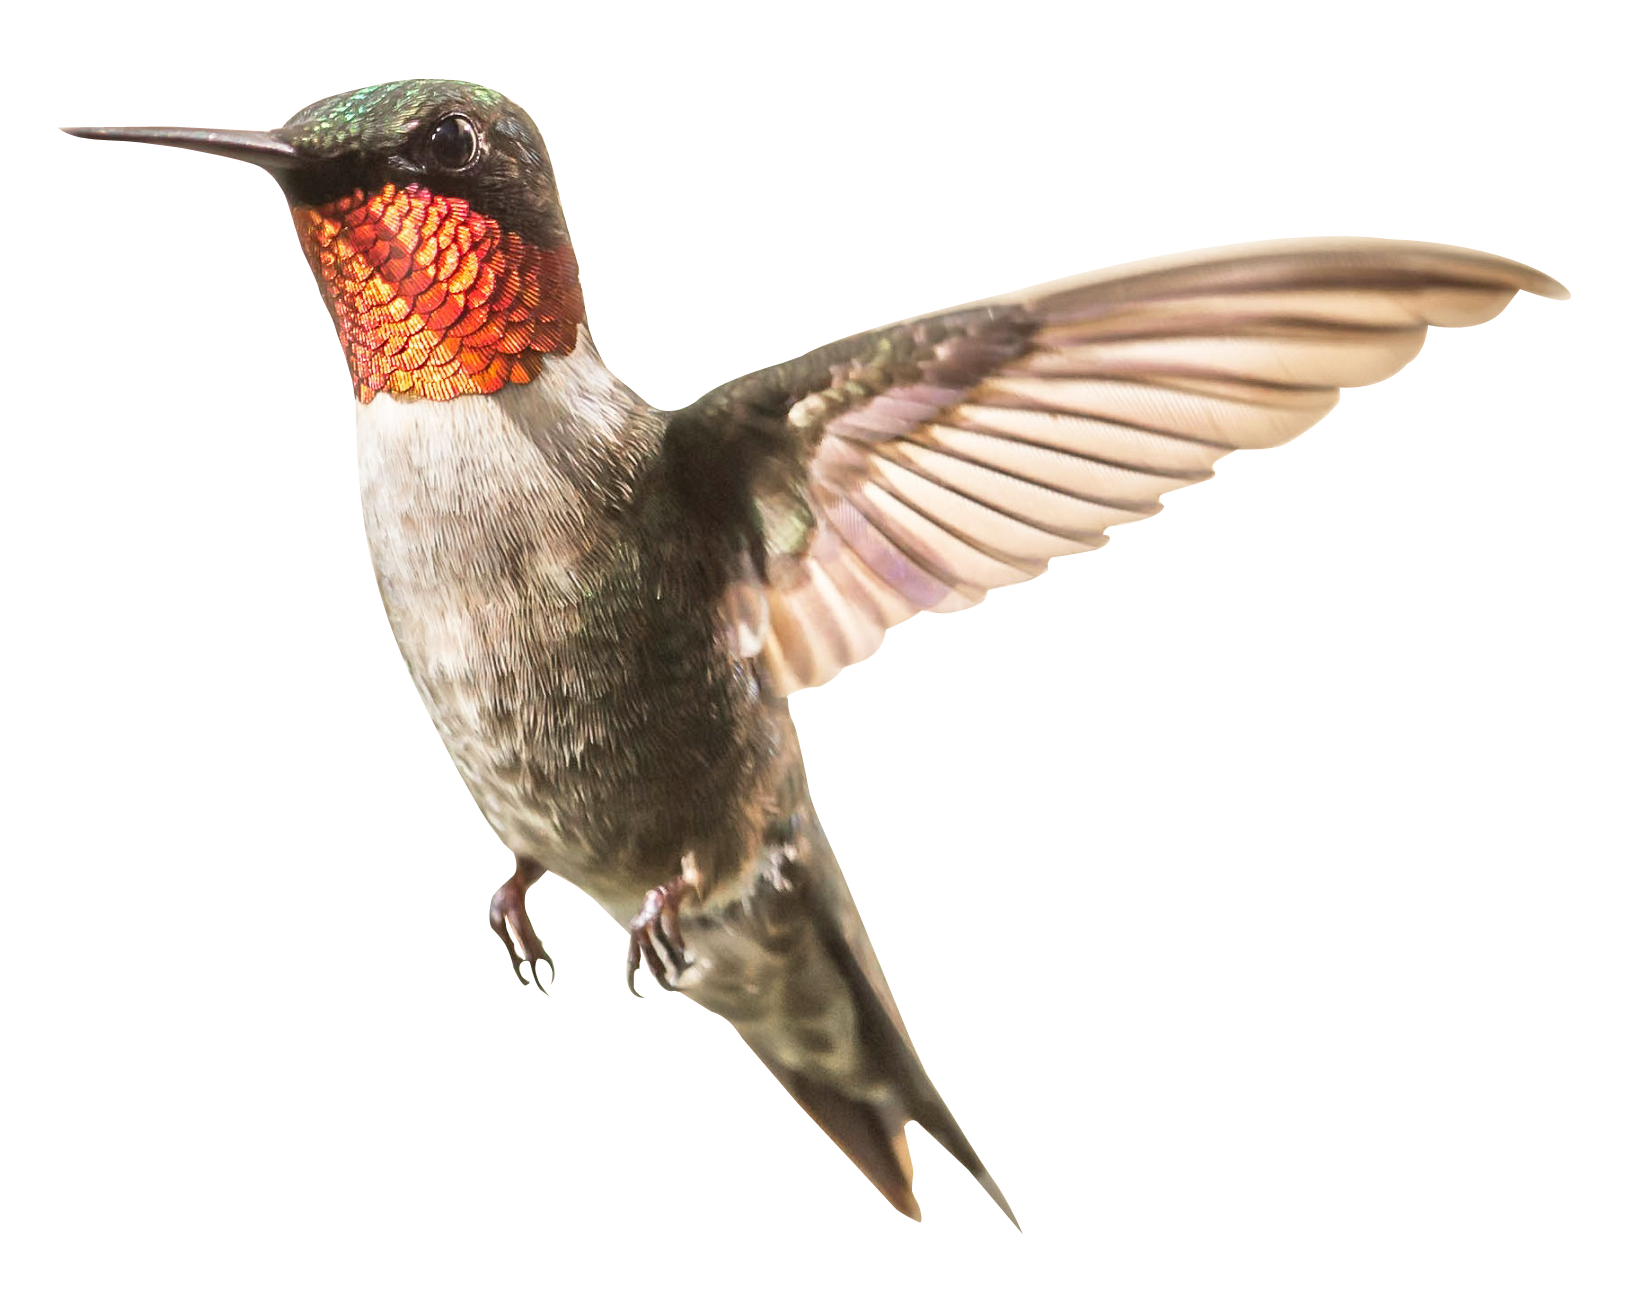 Humming Bird Png - Humming Bird Png Transparent (#1297915) - HD Wallpaper Download